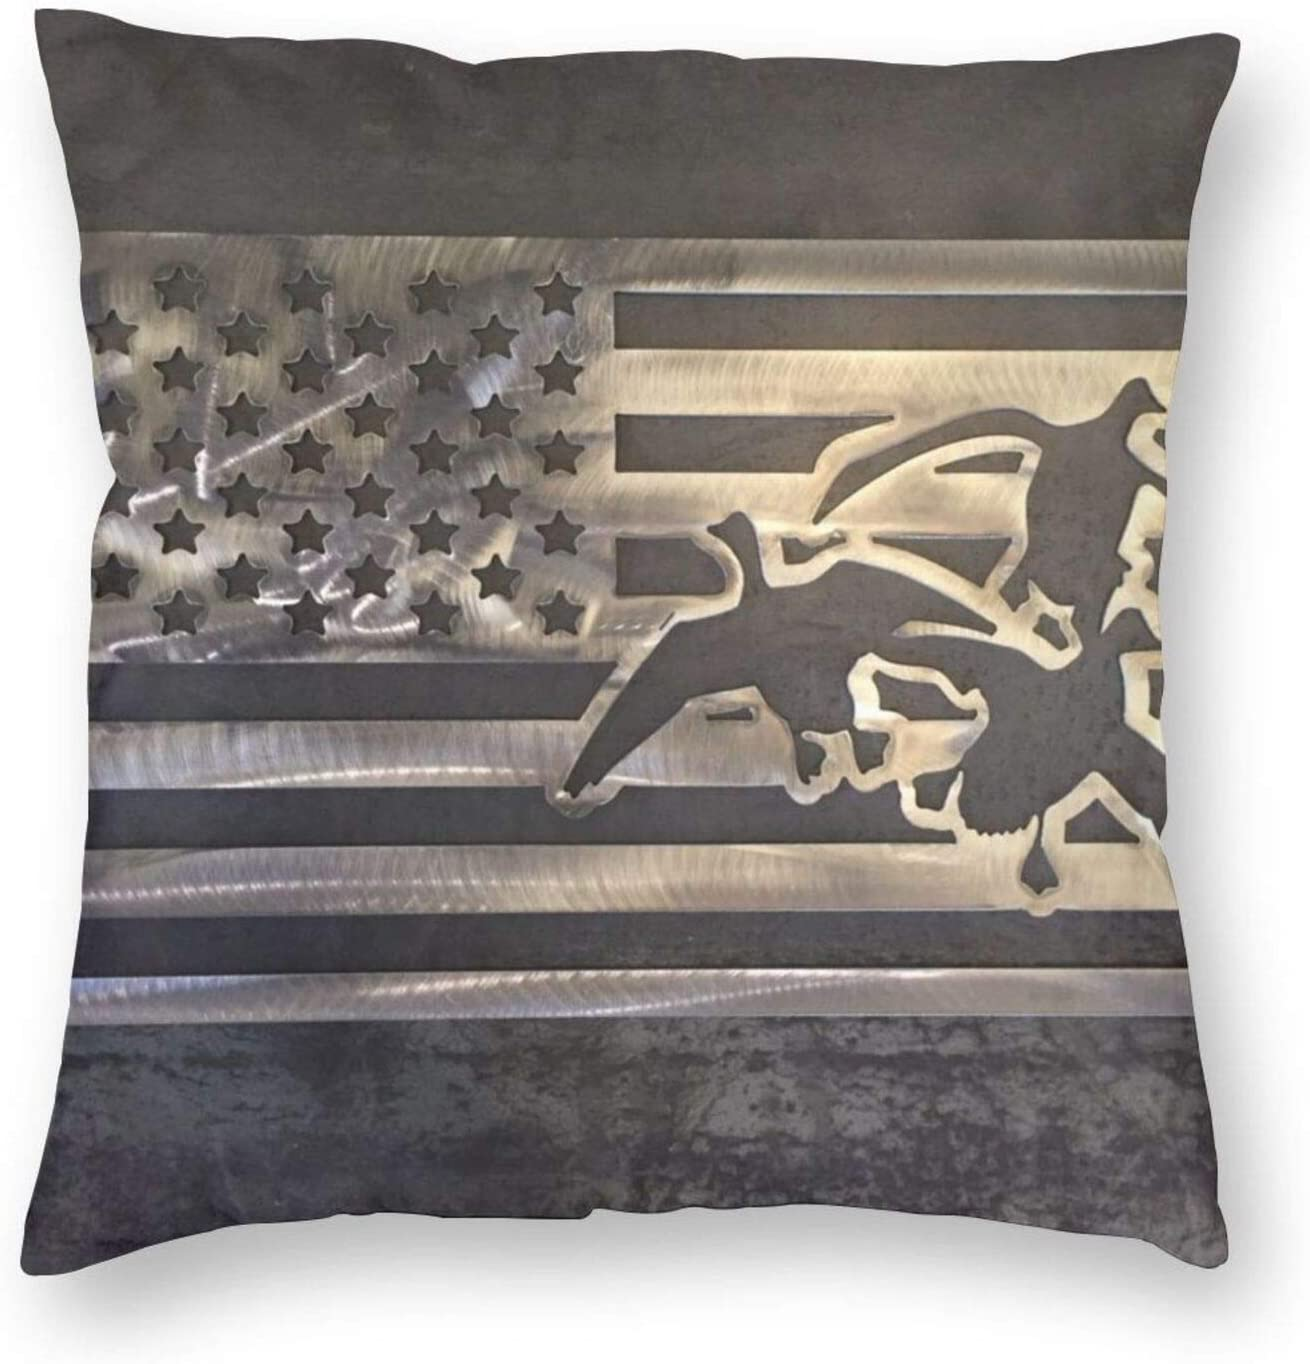 antoipyns Duck Hunting USA Flag 3D Printed Pattern Square Cushiondecorative Pillow Case Home Decor Square 18x18 Inches Pillowcase/Living Room/Car/Bedroom